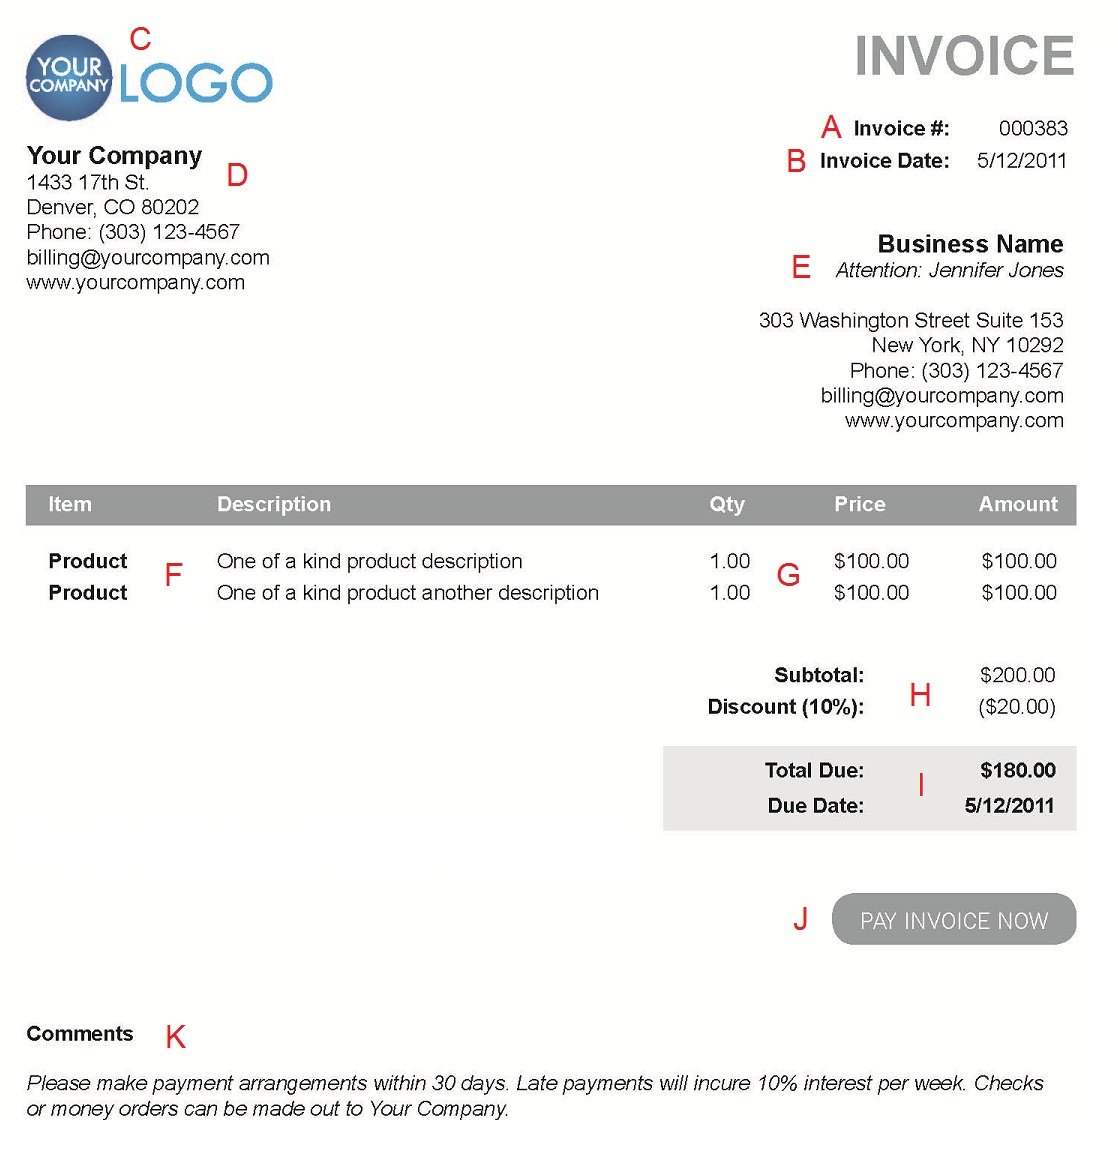 Pigbrotherus  Pleasing The  Different Sections Of An Electronic Payment Invoice With Interesting A  With Cool Thrifty Car Rental Receipt Also Child Care Receipt Template In Addition Free Printable Receipt And What Is Gross Receipts As Well As Kohls Return Without Receipt Additionally I  Receipt Notice From Paysimplecom With Pigbrotherus  Interesting The  Different Sections Of An Electronic Payment Invoice With Cool A  And Pleasing Thrifty Car Rental Receipt Also Child Care Receipt Template In Addition Free Printable Receipt From Paysimplecom